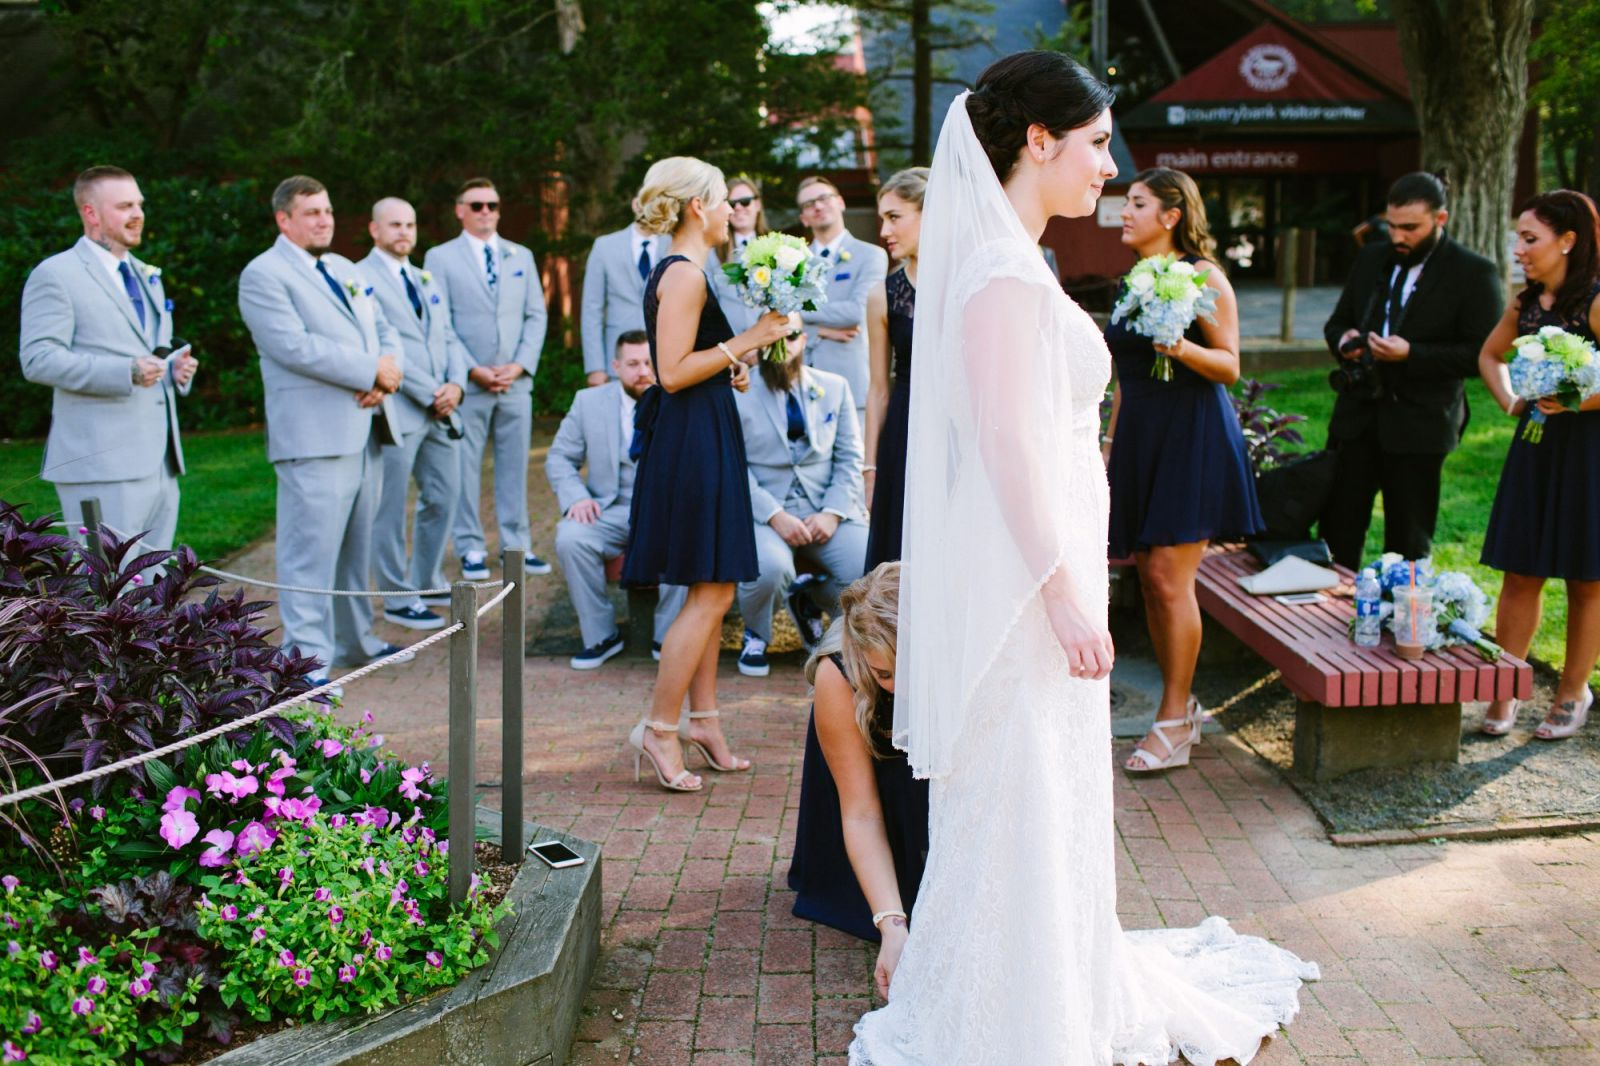 Candid photo of bridal party before wedding